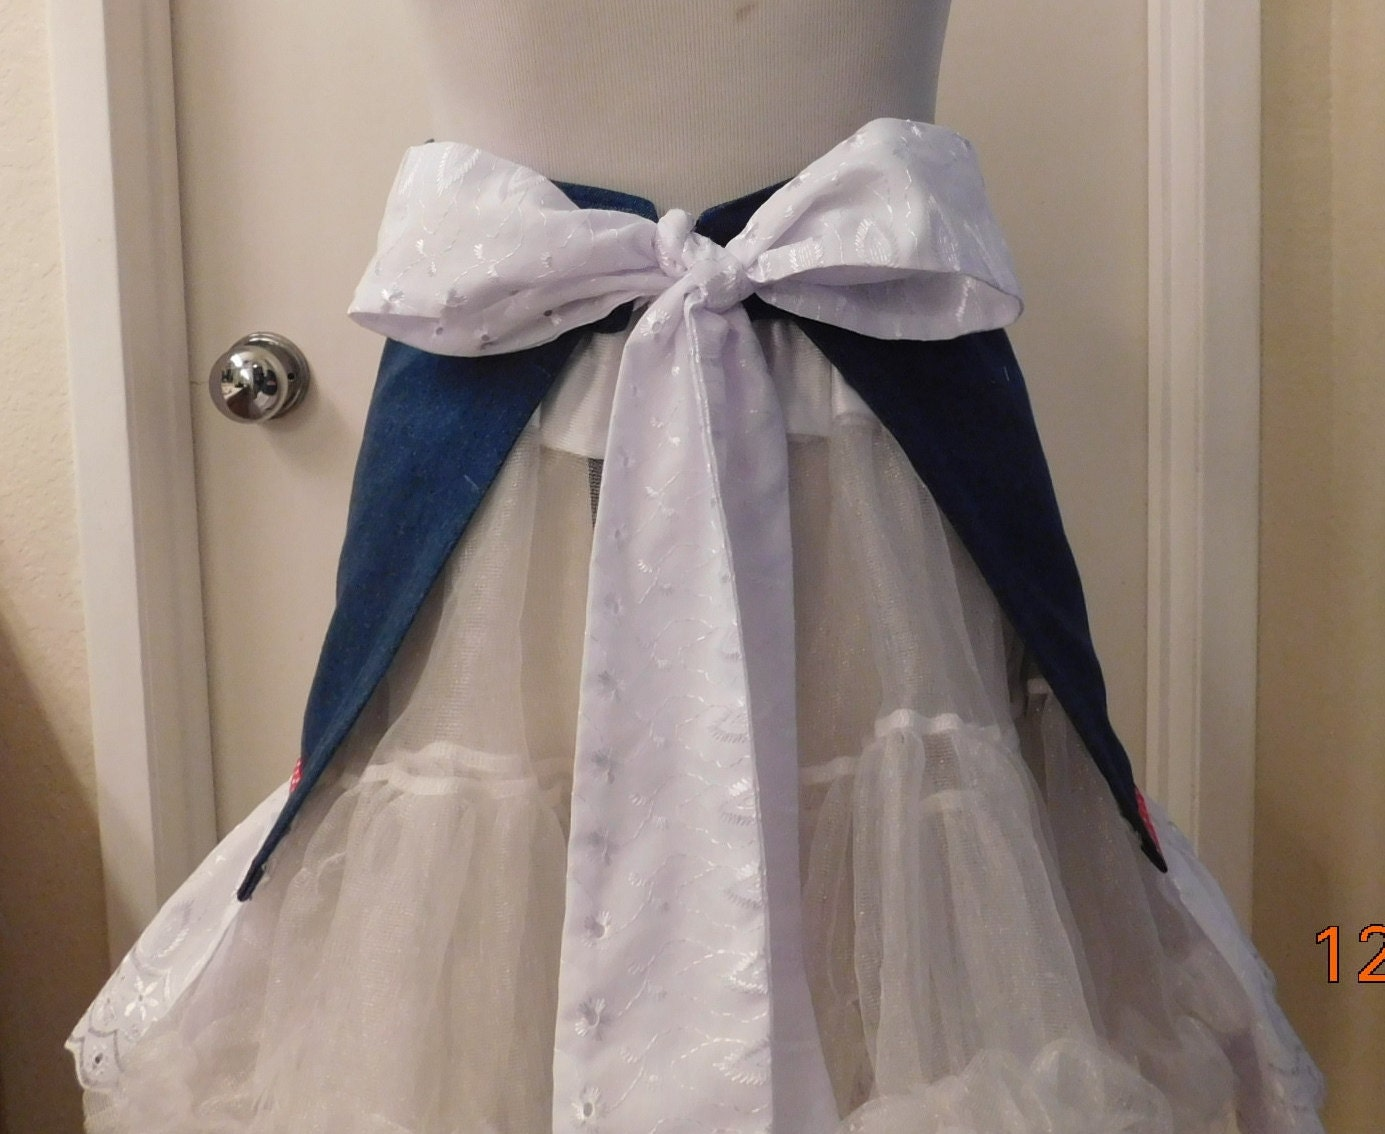 White apron lace trim - Gallery Photo Gallery Photo Gallery Photo Gallery Photo